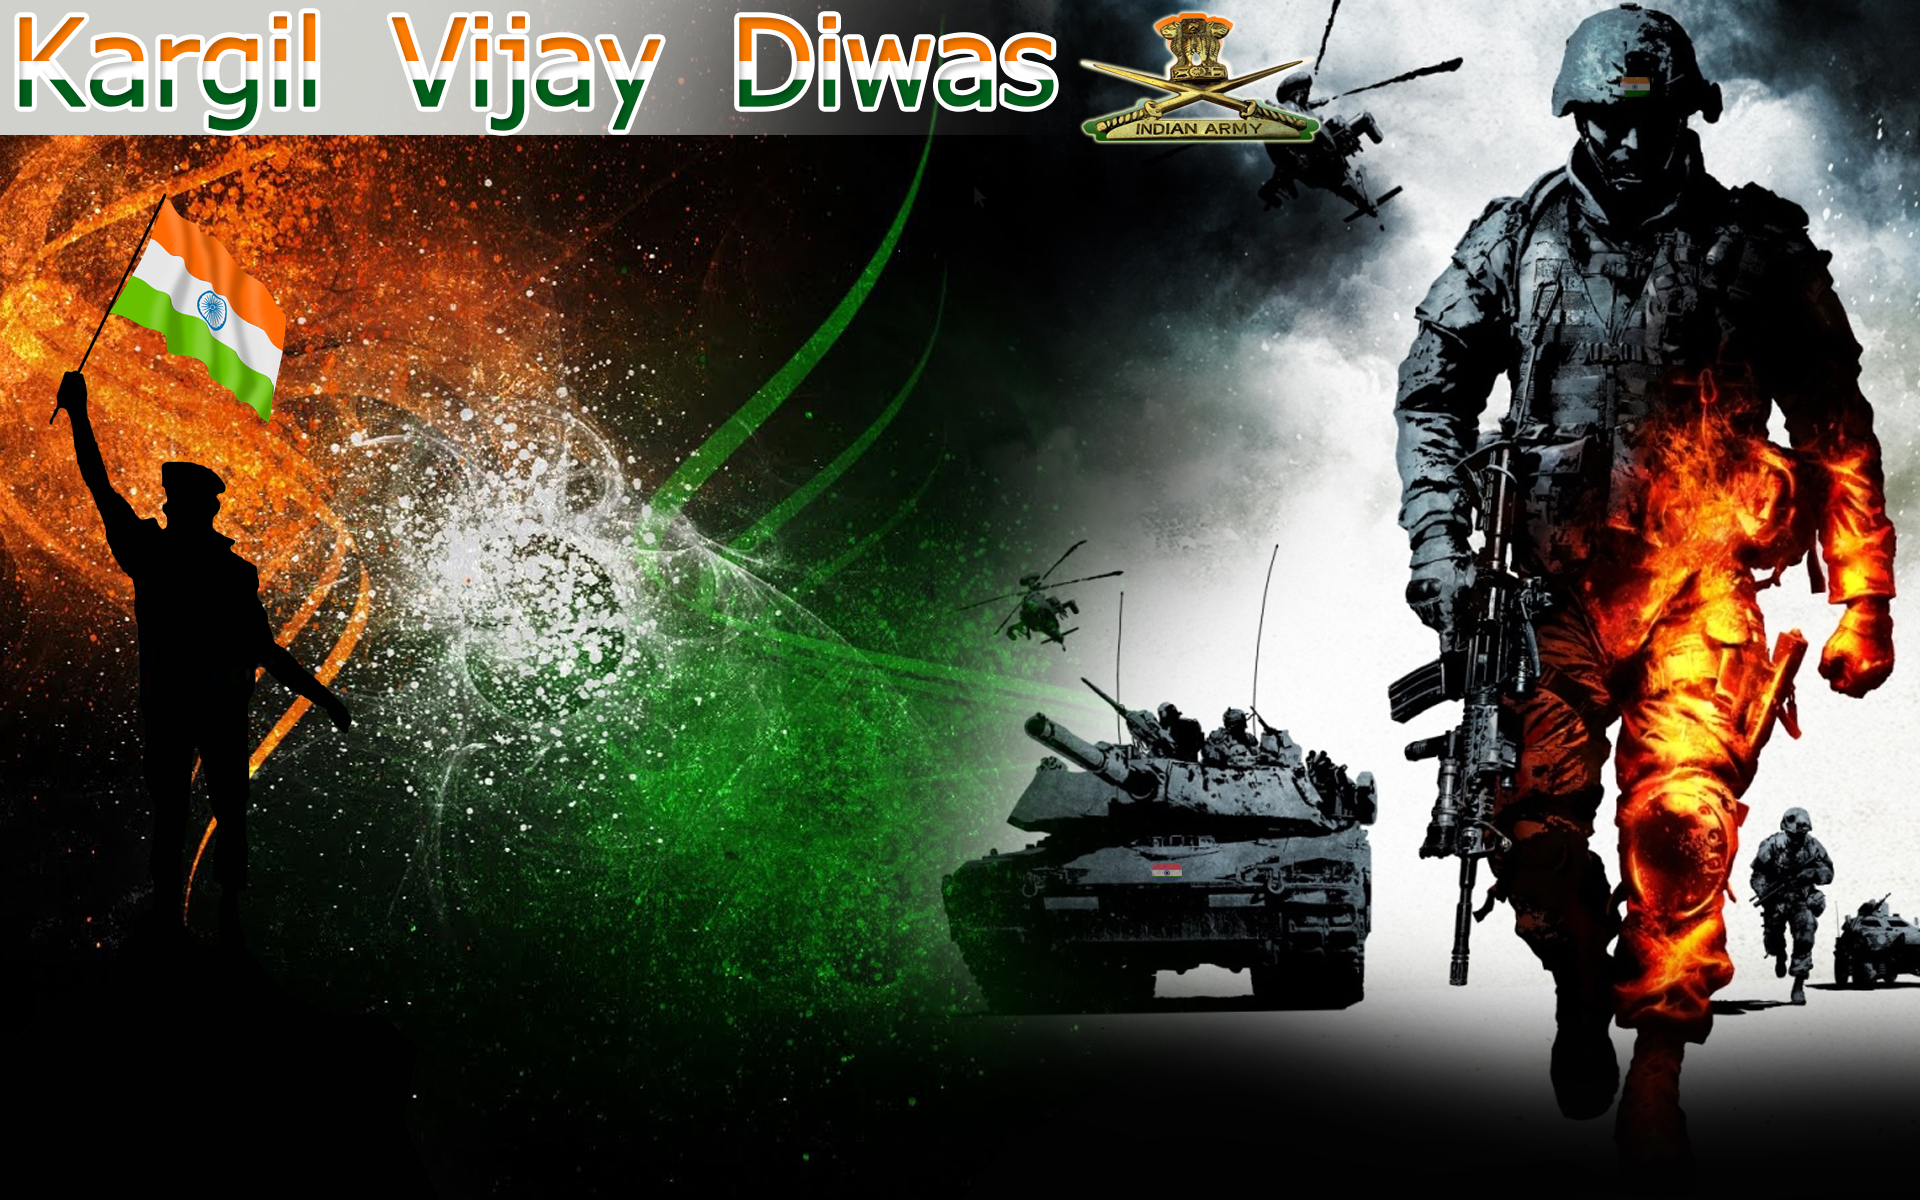 2b/26/a-salute-to-our-heroes-kargil-vijay-diwas-july-26.jpg